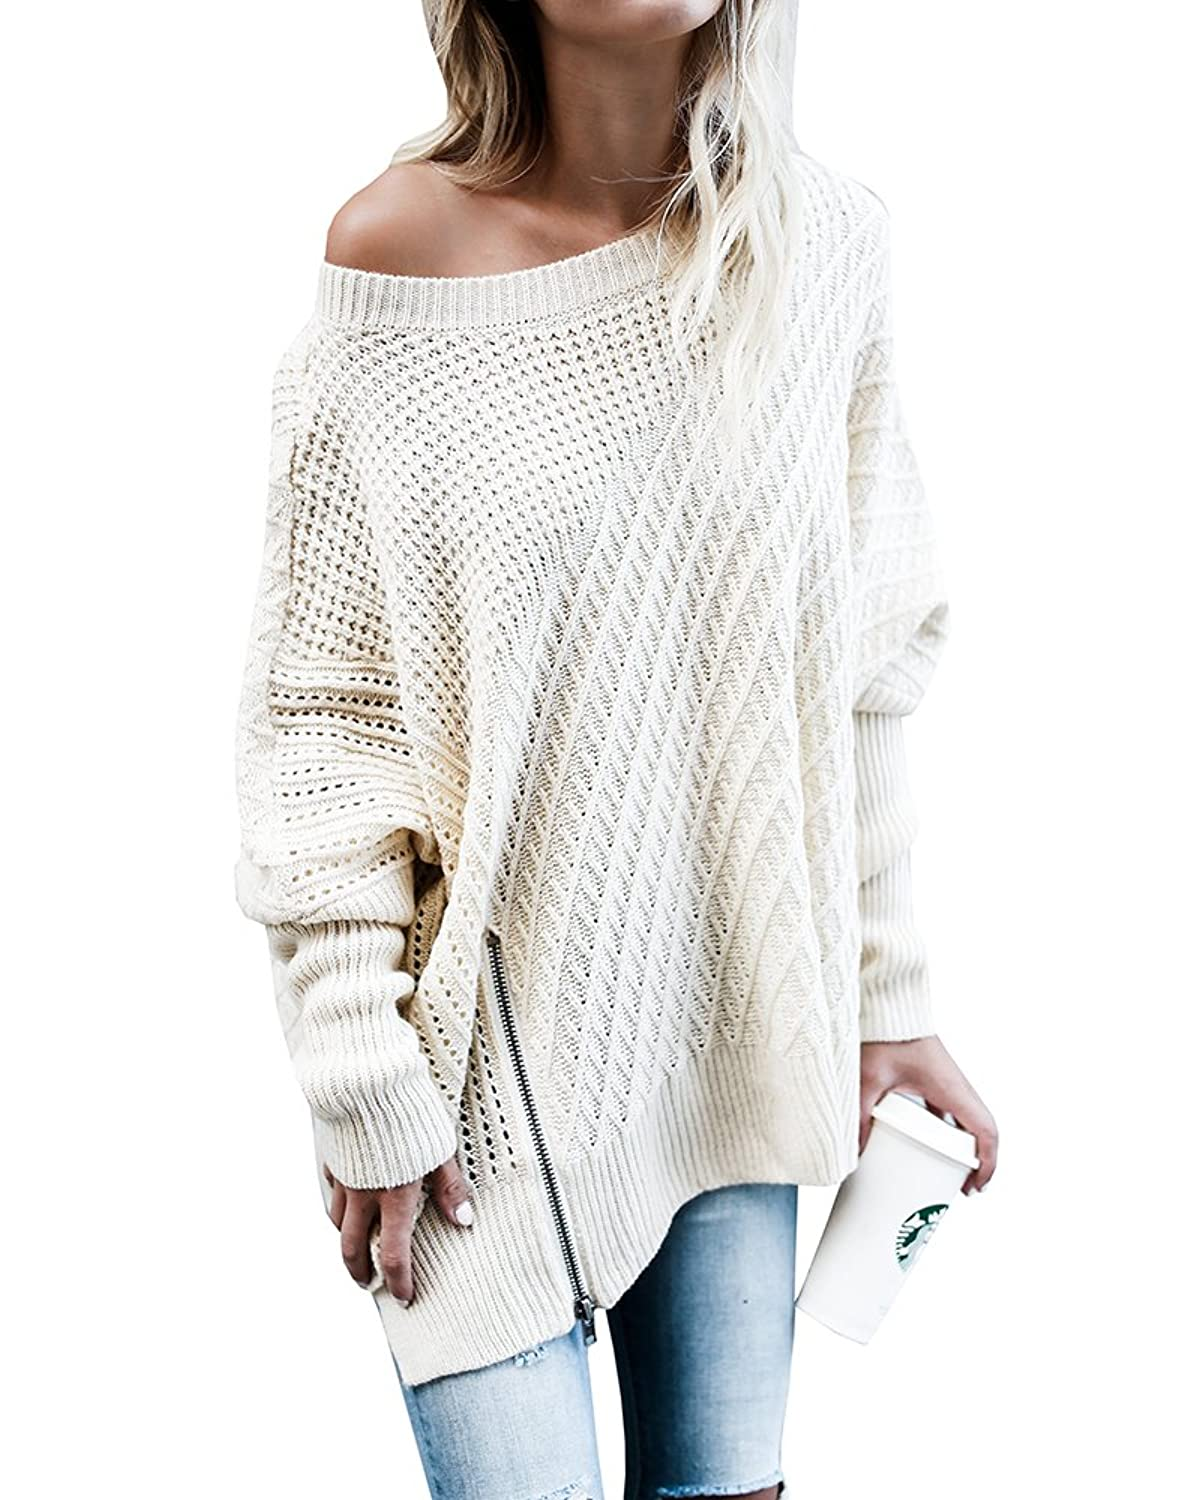 22d70c804 Top 10 wholesale Oversized Off The Shoulder Knit Sweater ...